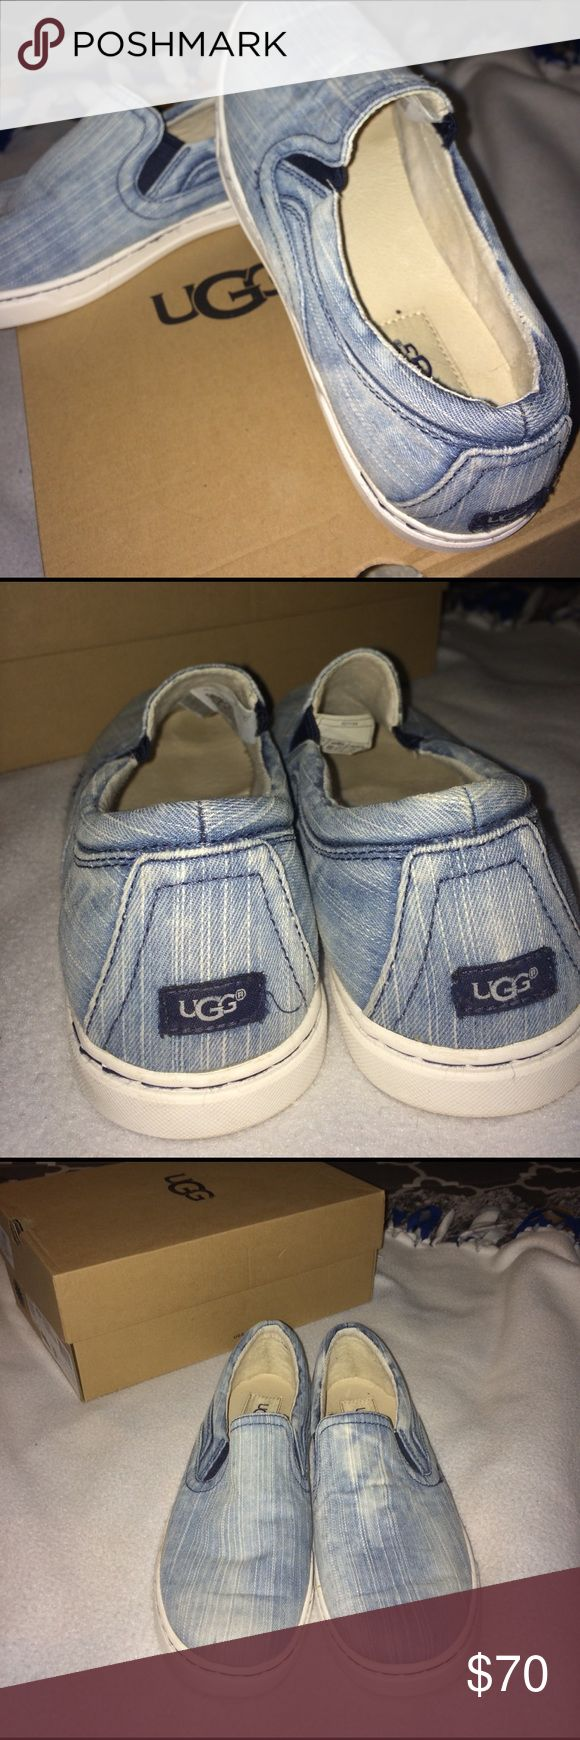 New in box ugg sneakers Washed denim color ugg sneakers. Brand new! I wore them around the house for a little but then decided I didn't need them. Very unique! I'm open to offers but please be respectful of the shoe and the price UGG Shoes Sneakers